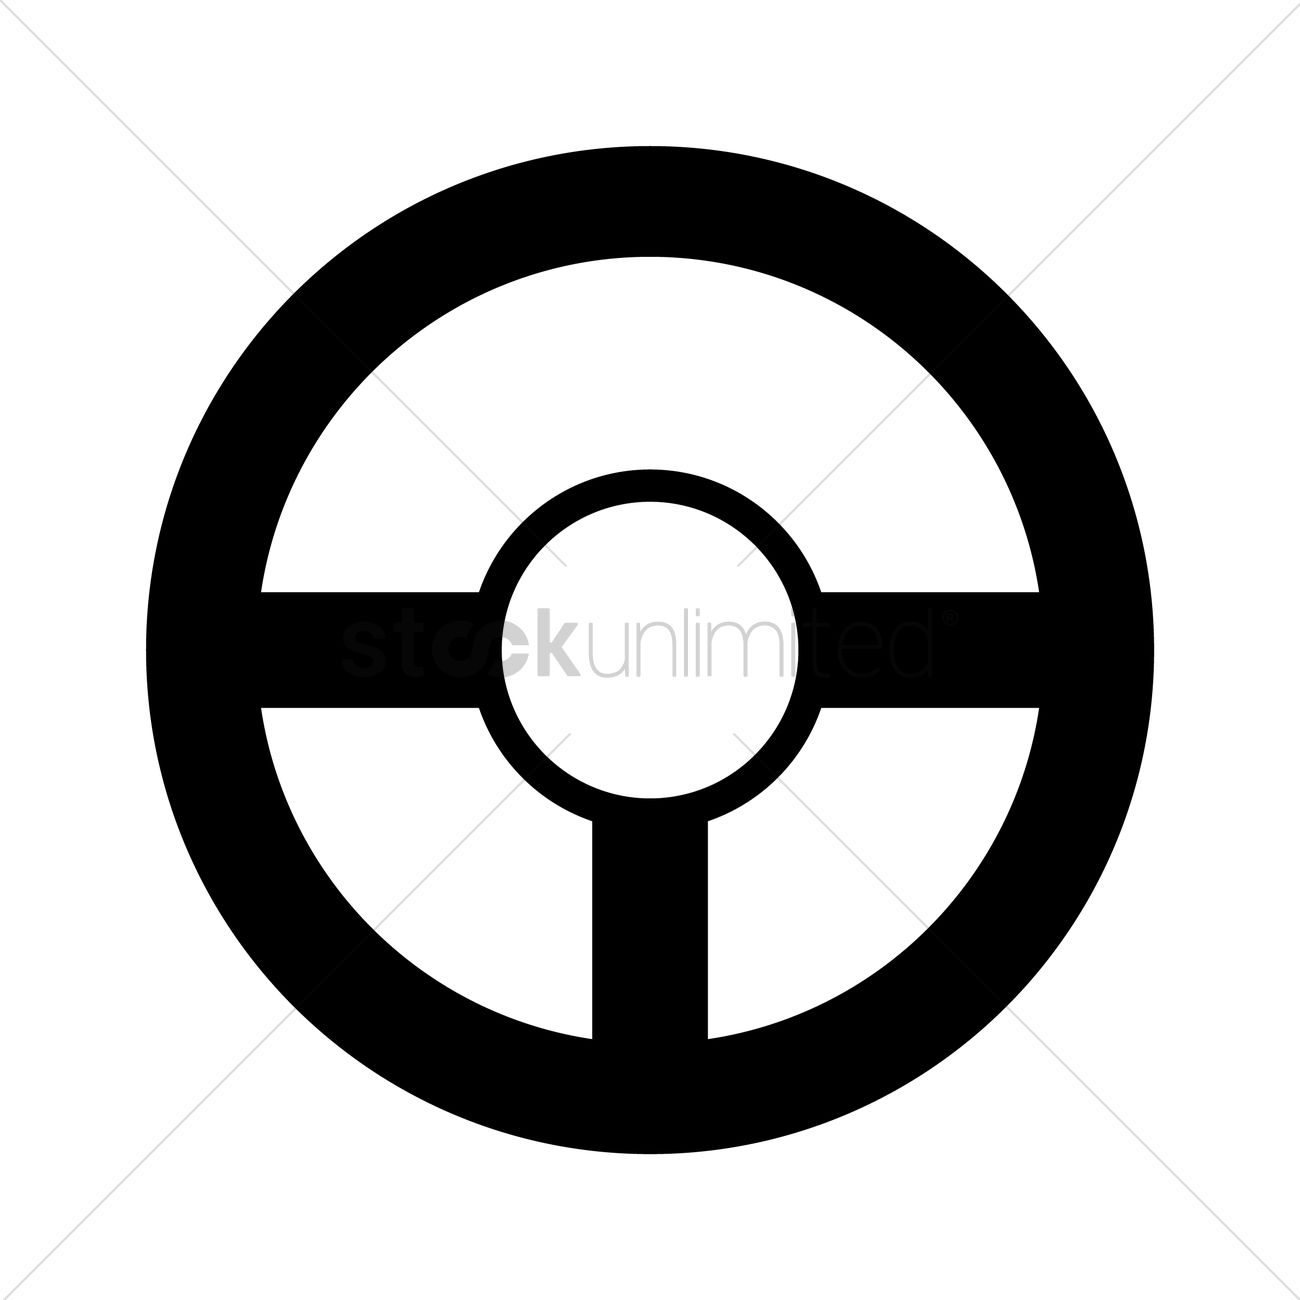 steering wheel vector image 2019540 stockunlimited steering wheel vector image 2019540